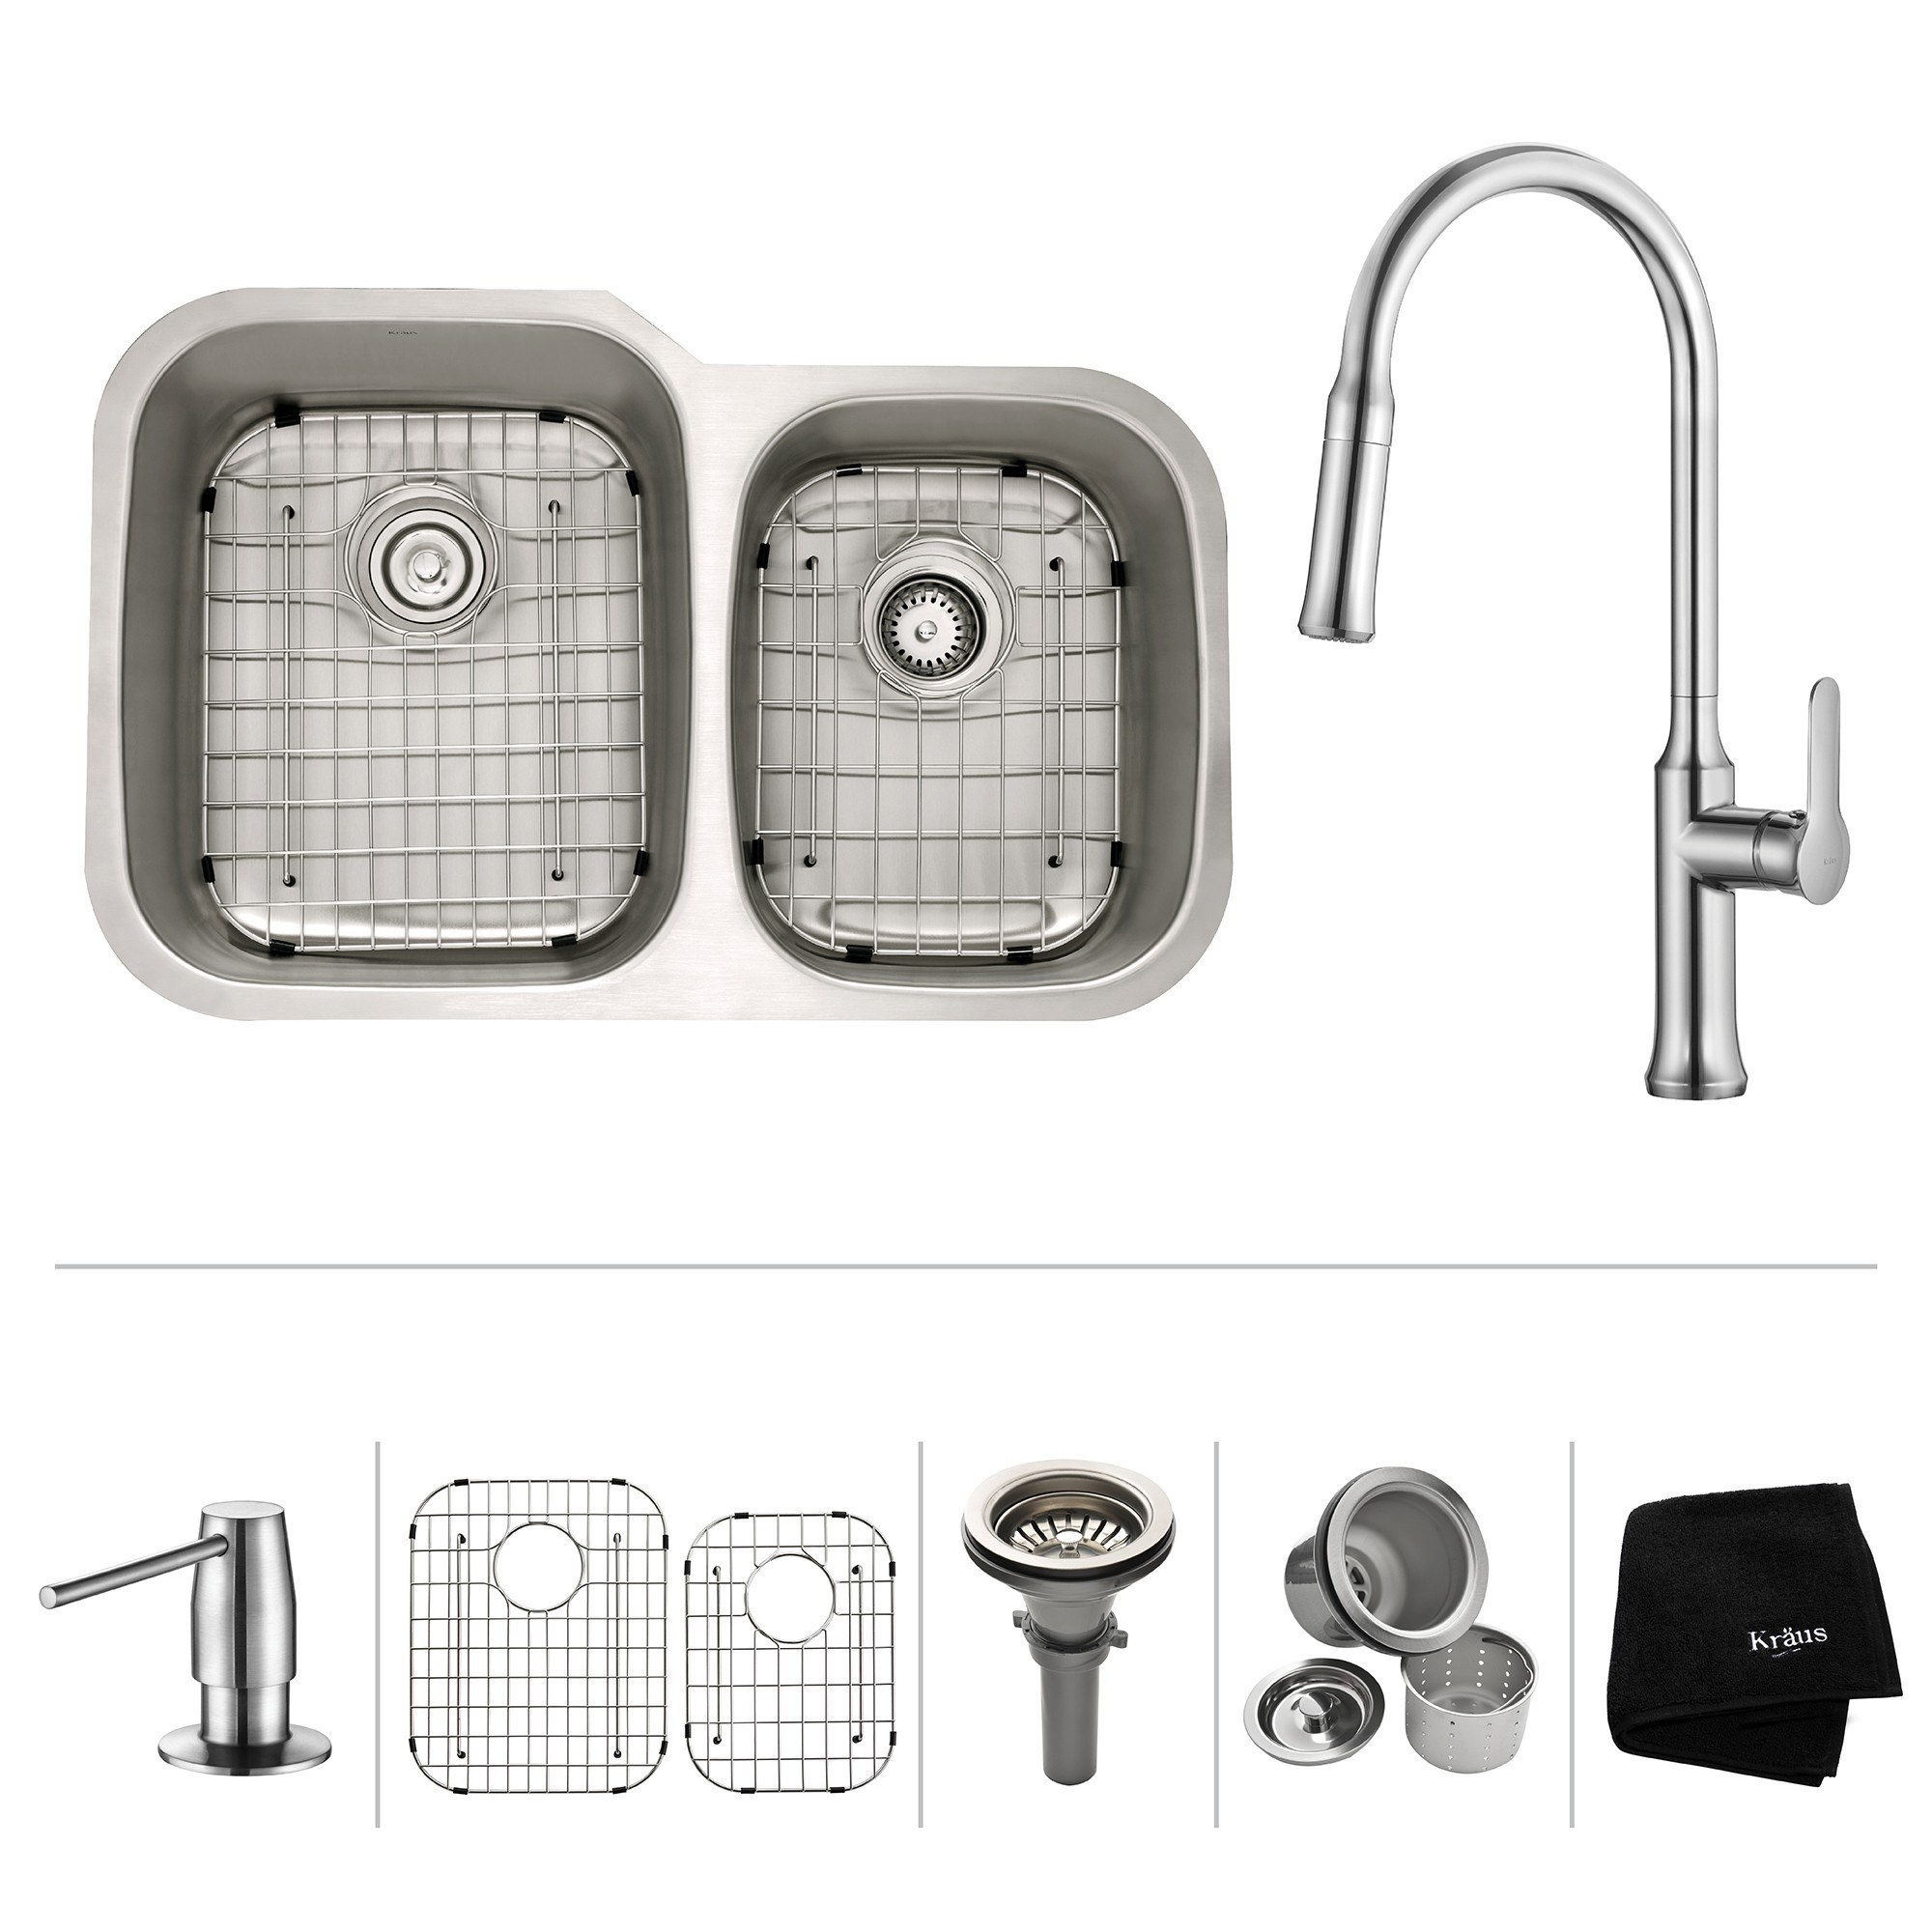 Kraus KBU24-1630-42 32 Inch Undermount 60/40 Double Bowl Stainless Steel Sink with Pull Down Faucet